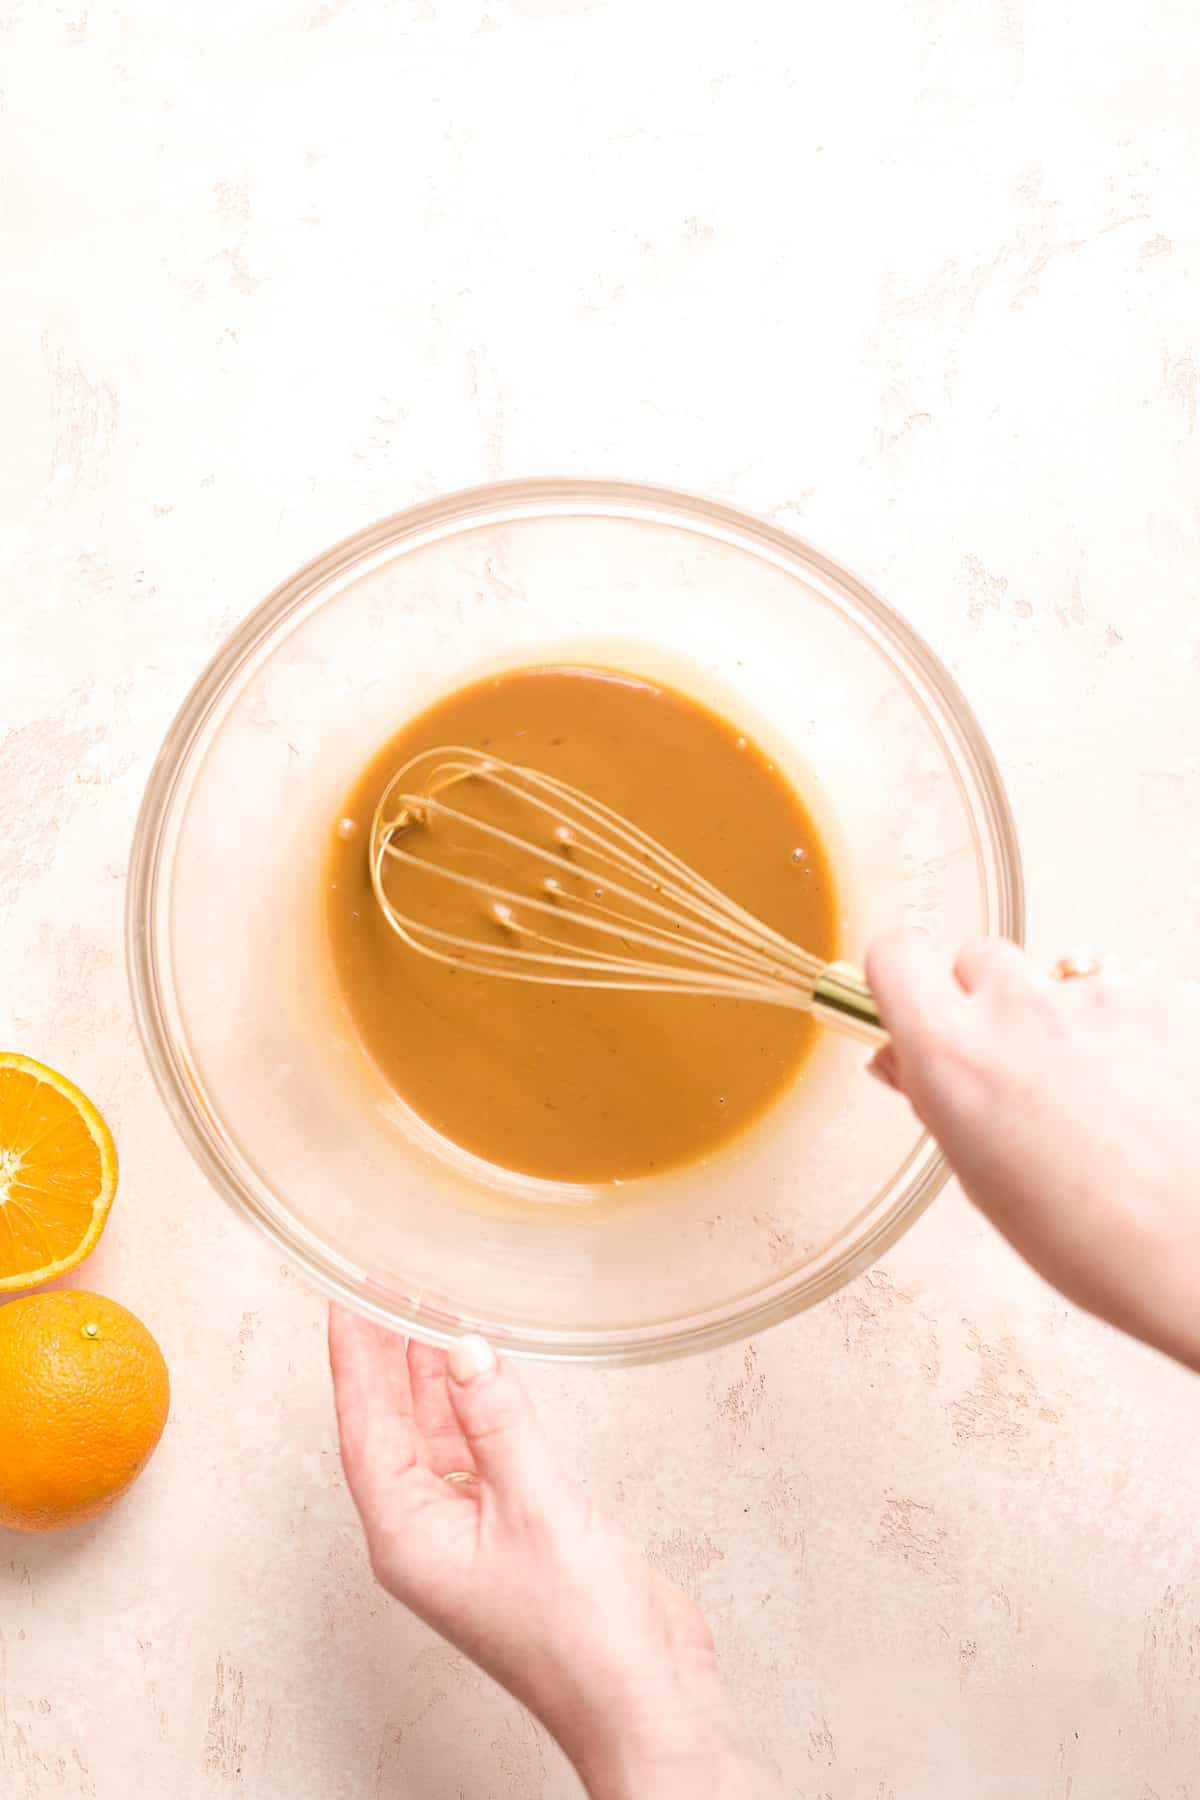 Hand whisking tan mixture in a large glass bowl with an orange off to the side.